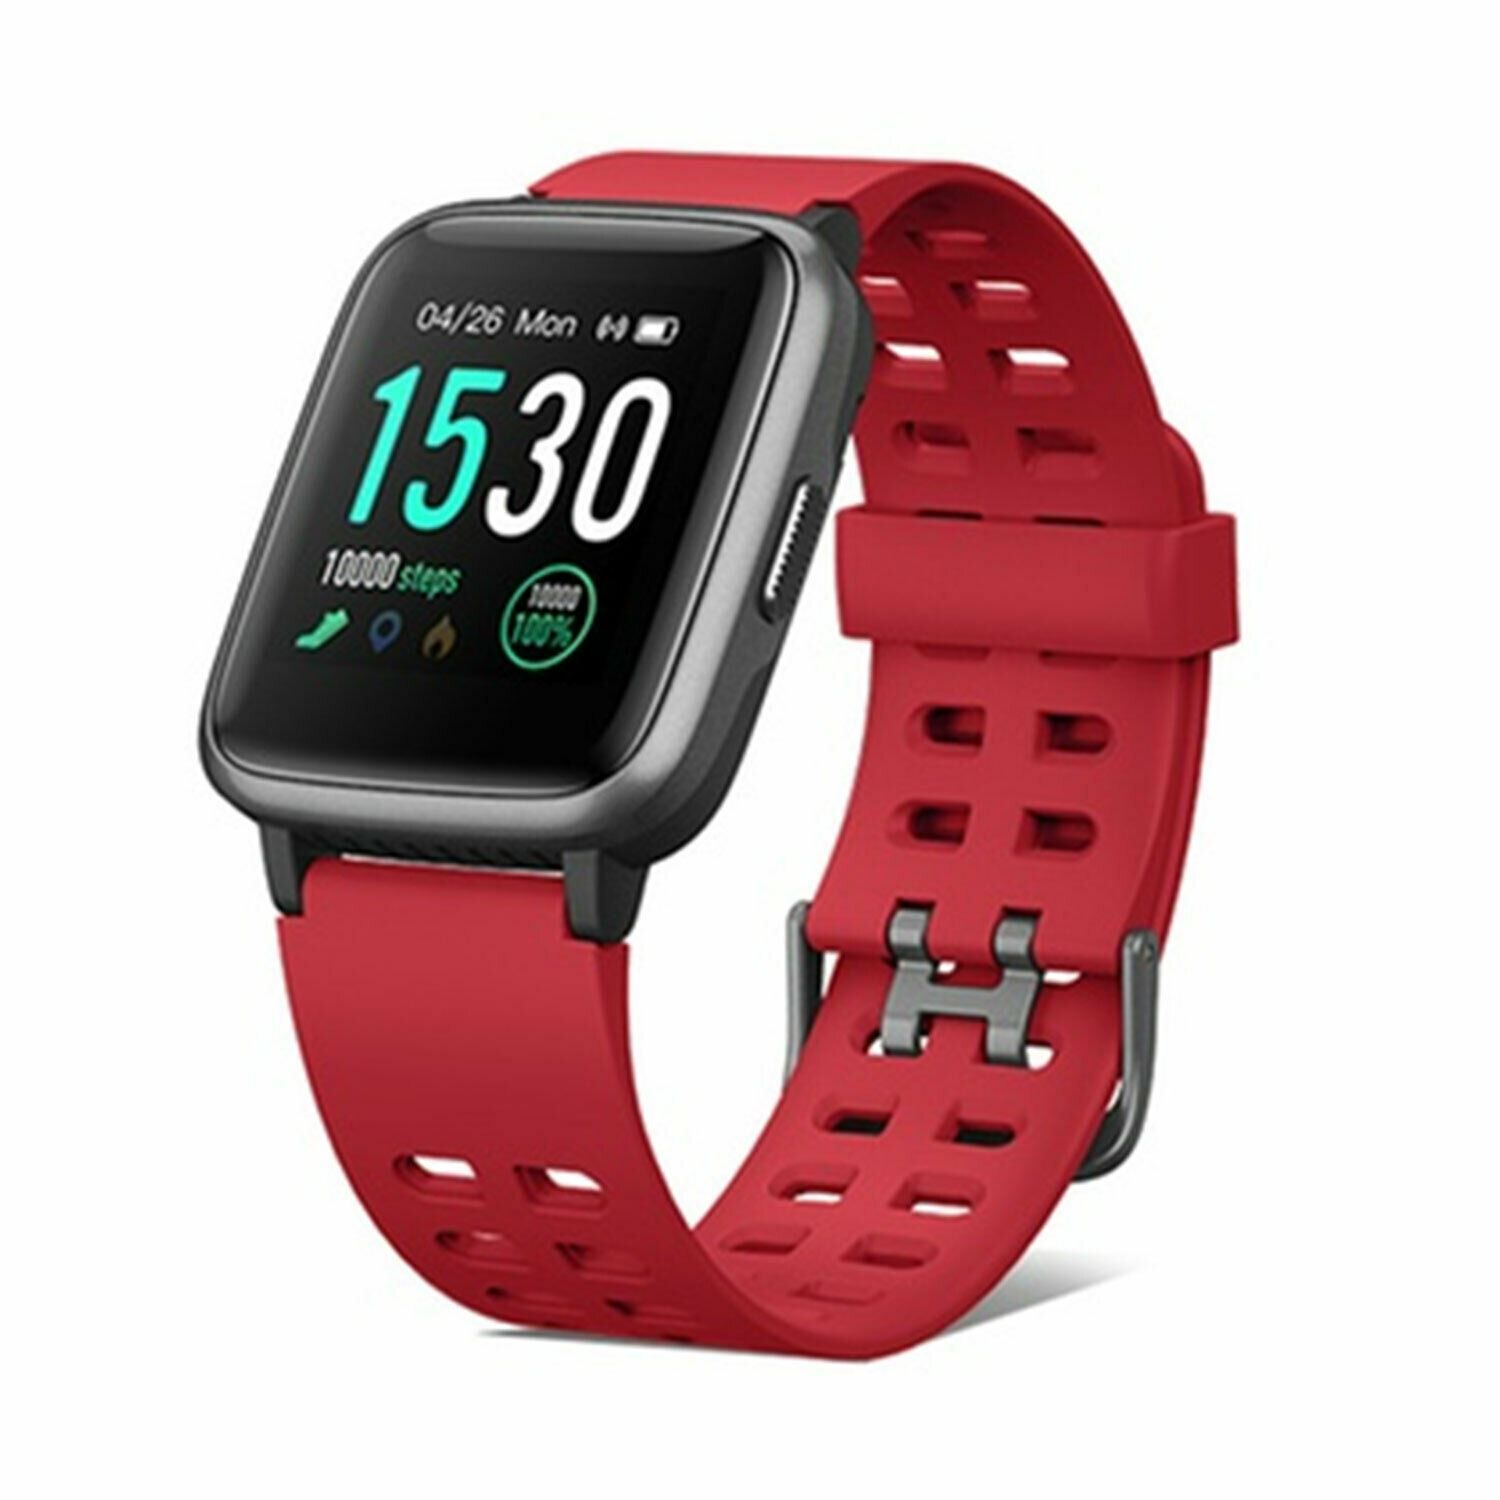 Aquarius 149 Fitness Watch Heart Rate & 7 Sports tracking mode Red